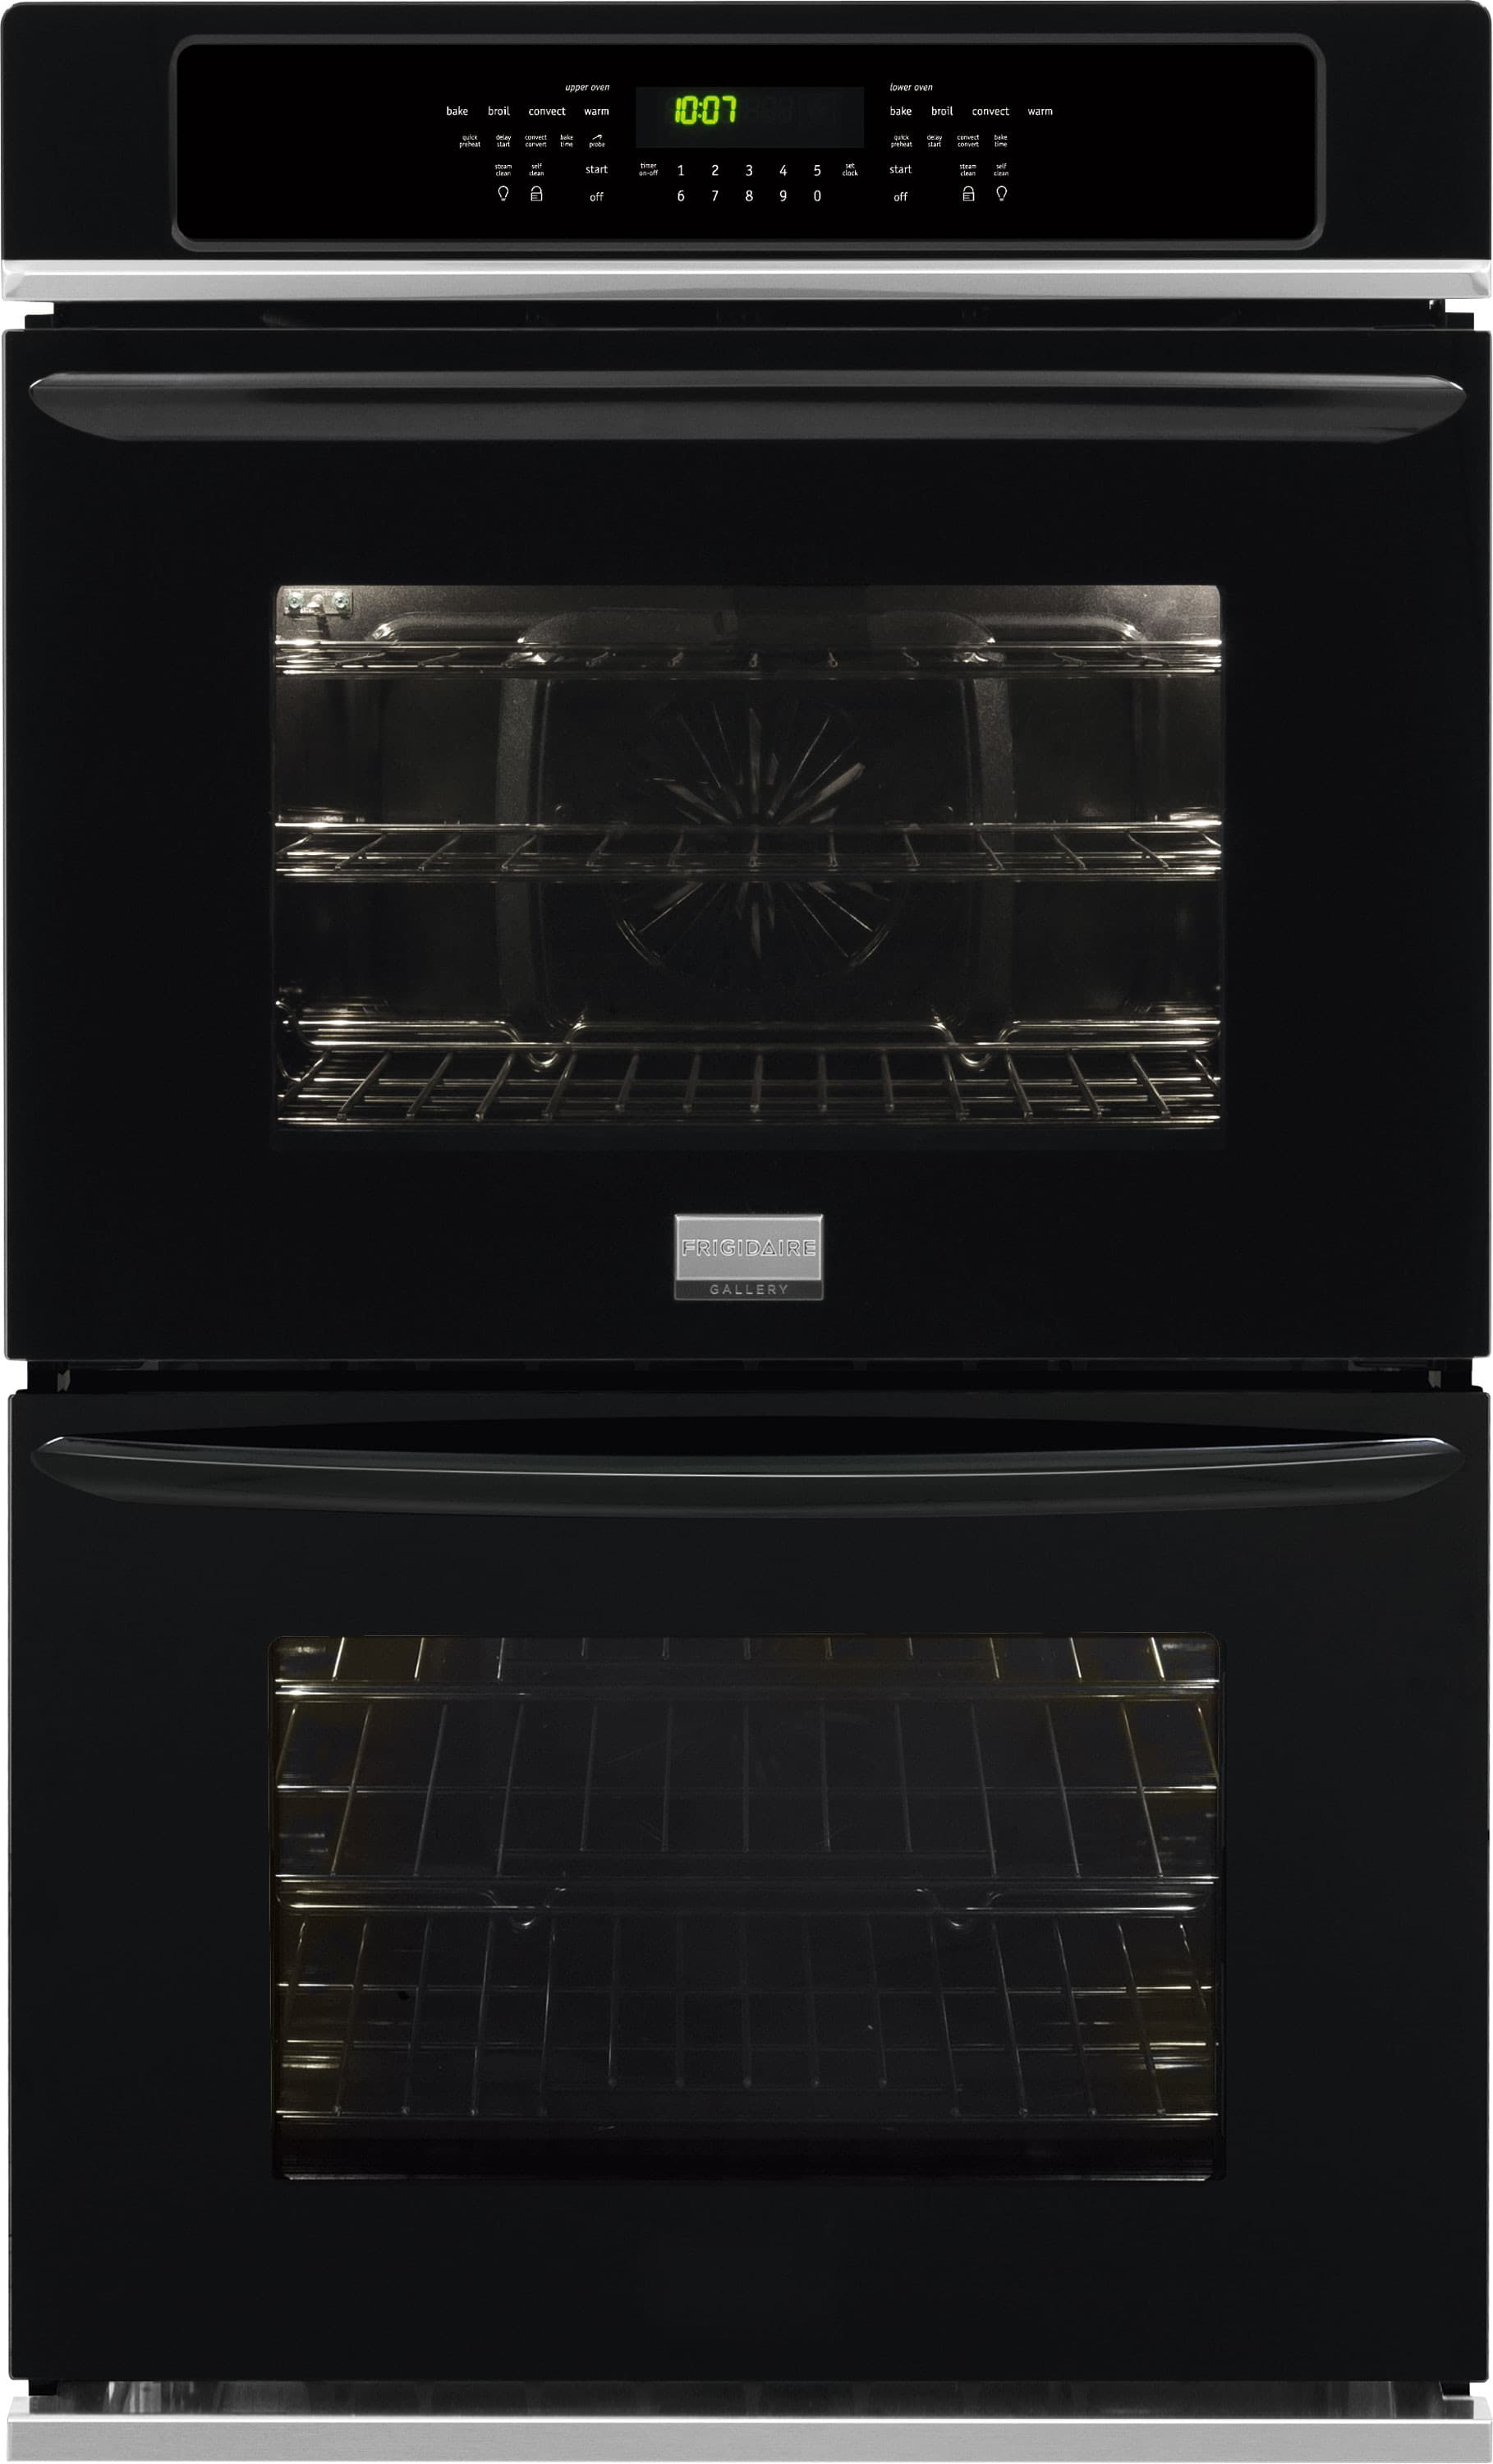 Best Wine Coolers >> Frigidaire FGET3065PB 30 Inch Double Electric Wall Oven with Effortless™ Temp Probe, Smudge ...